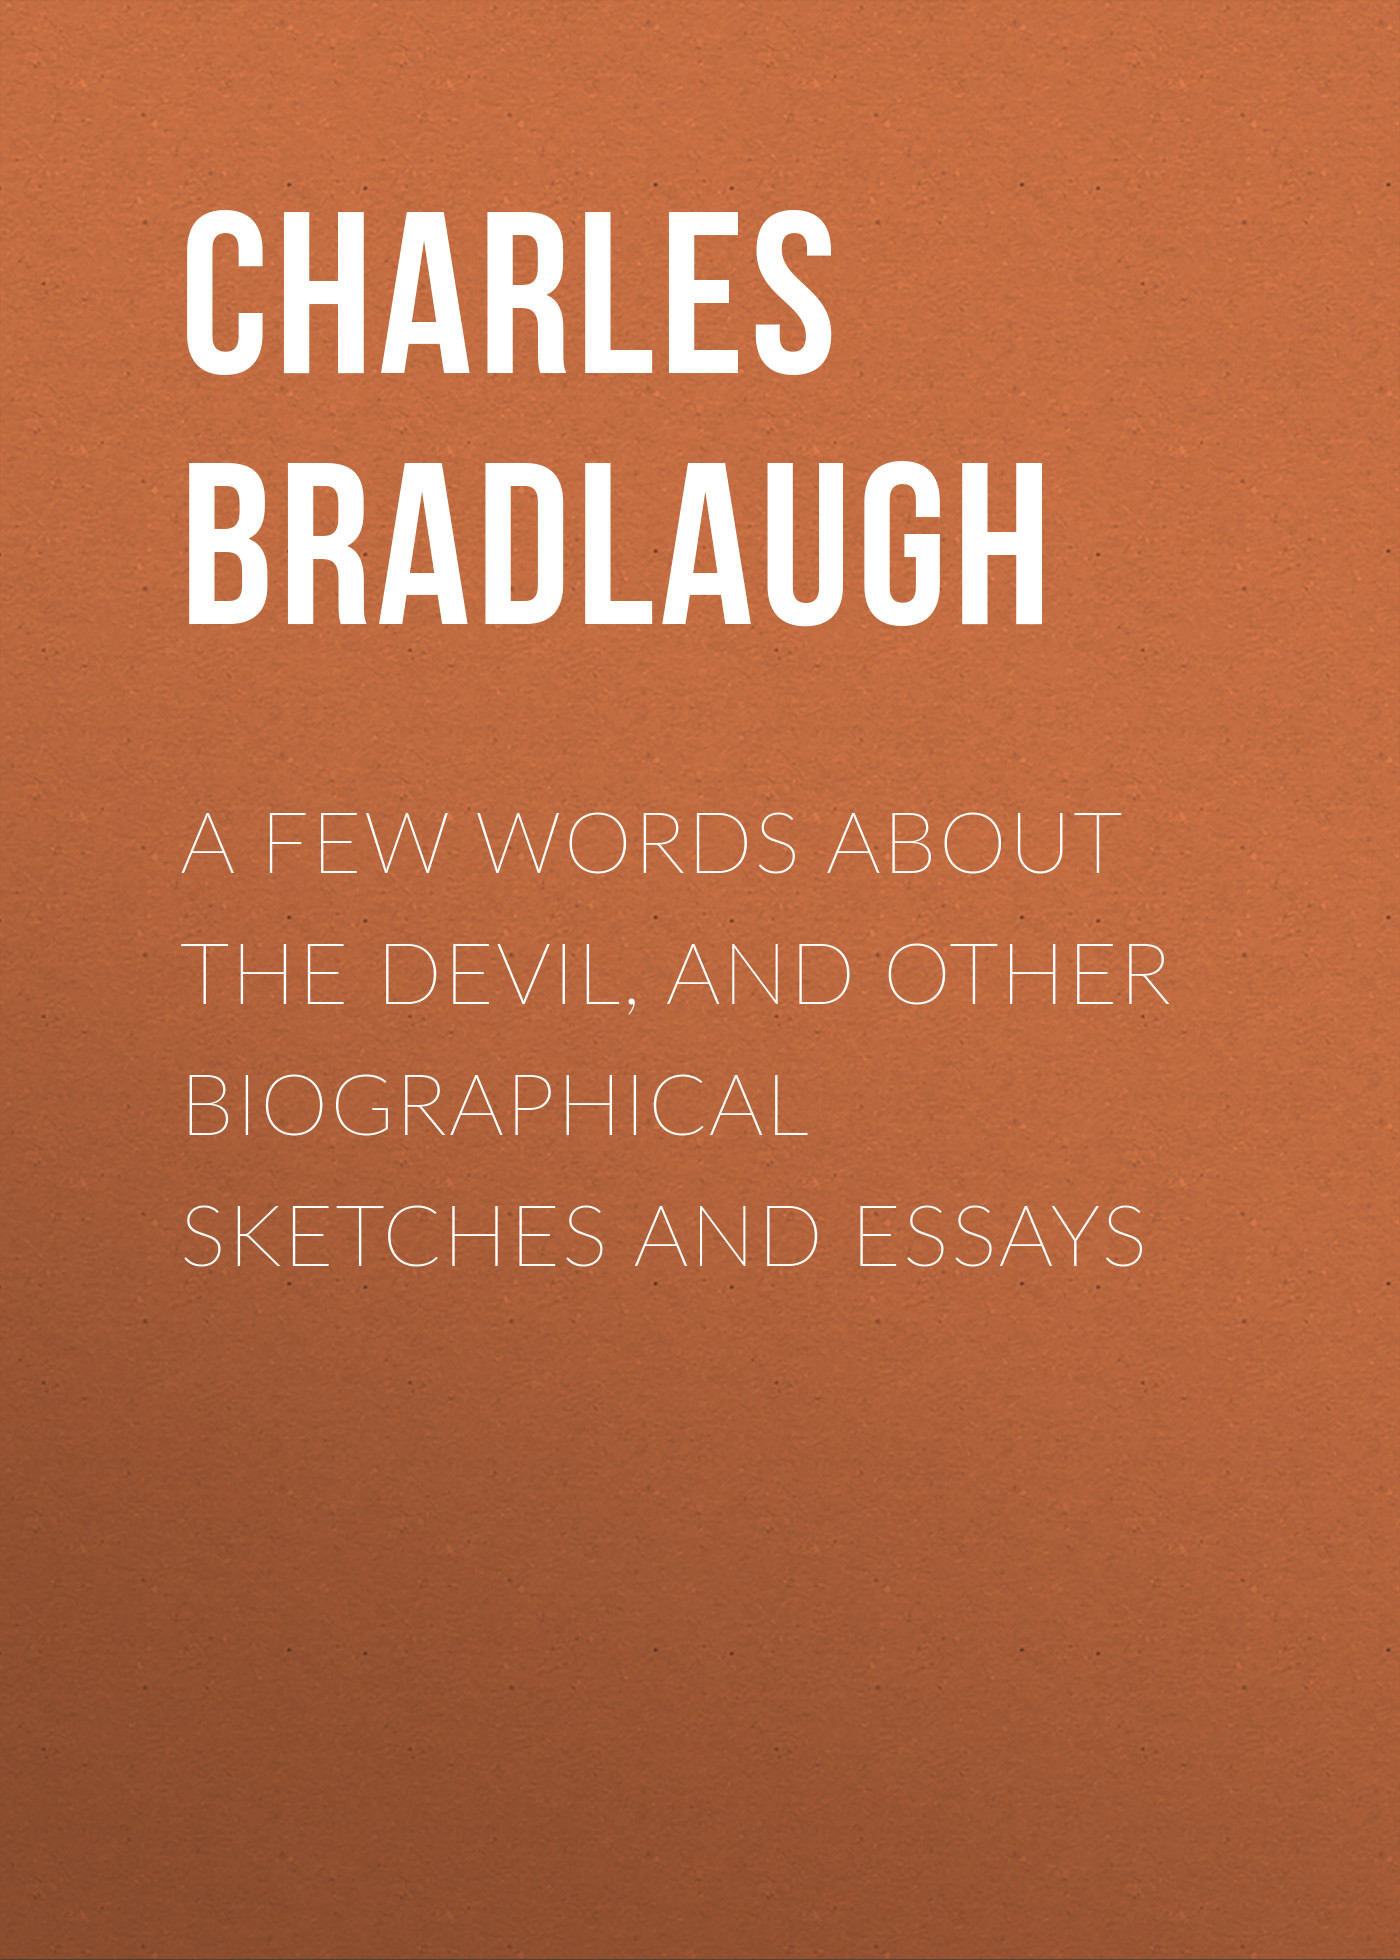 Bradlaugh Charles A Few Words About the Devil, and Other Biographical Sketches and Essays чехол д гладильной доски ева 125х47см х б